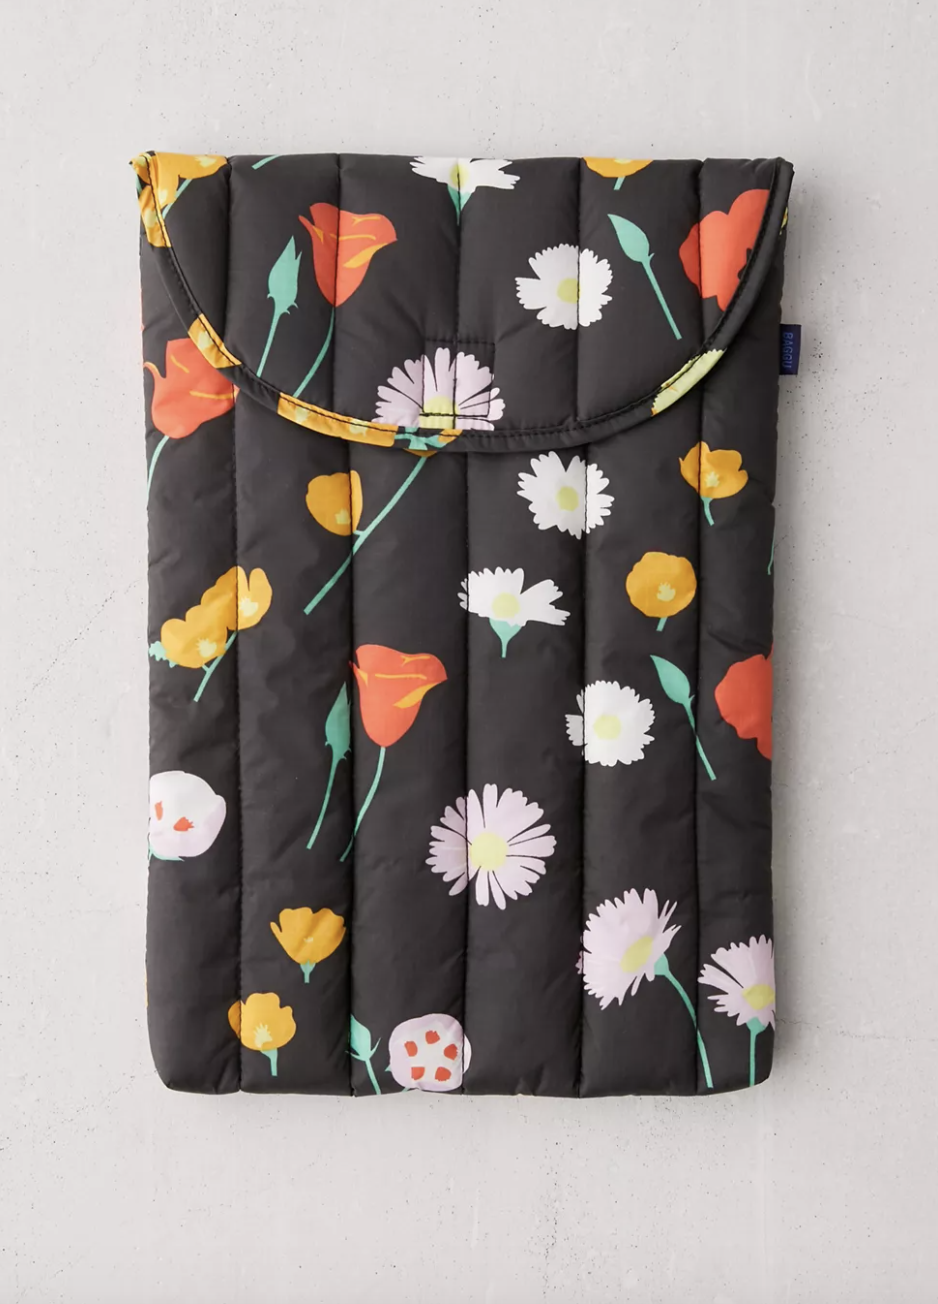 """<br><br><strong>Baggu</strong> BAGGU Puffy 16"""" Laptop Sleeve, $, available at <a href=""""https://go.skimresources.com/?id=30283X879131&url=https%3A%2F%2Fwww.urbanoutfitters.com%2Fshop%2Fbaggu-puffy-16-laptop-sleeve"""" rel=""""nofollow noopener"""" target=""""_blank"""" data-ylk=""""slk:Urban Outfitters"""" class=""""link rapid-noclick-resp"""">Urban Outfitters</a>"""